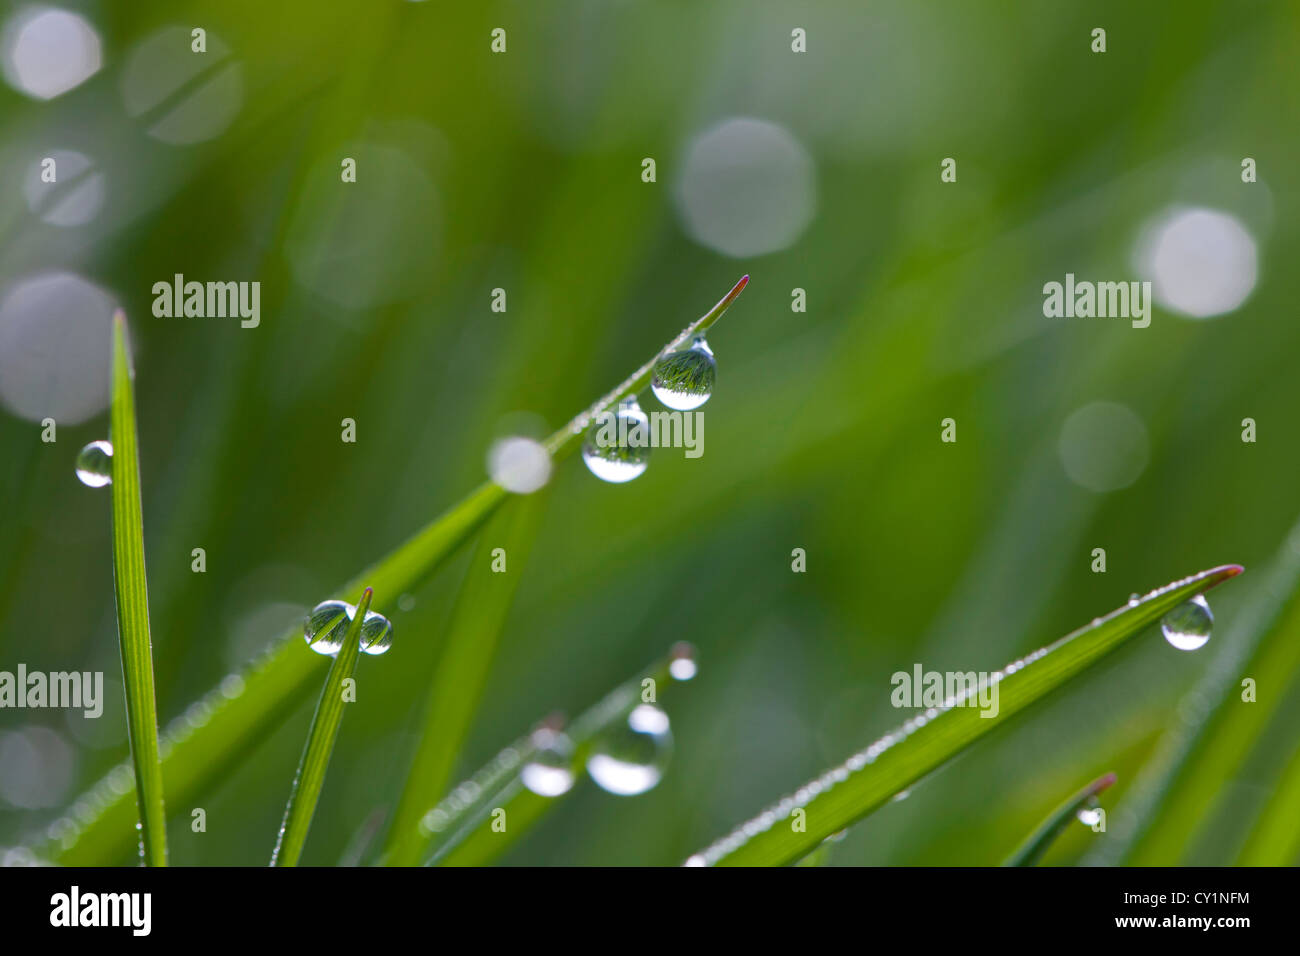 Close up of dewdrops on blades of grass in meadow in early morning - Stock Image